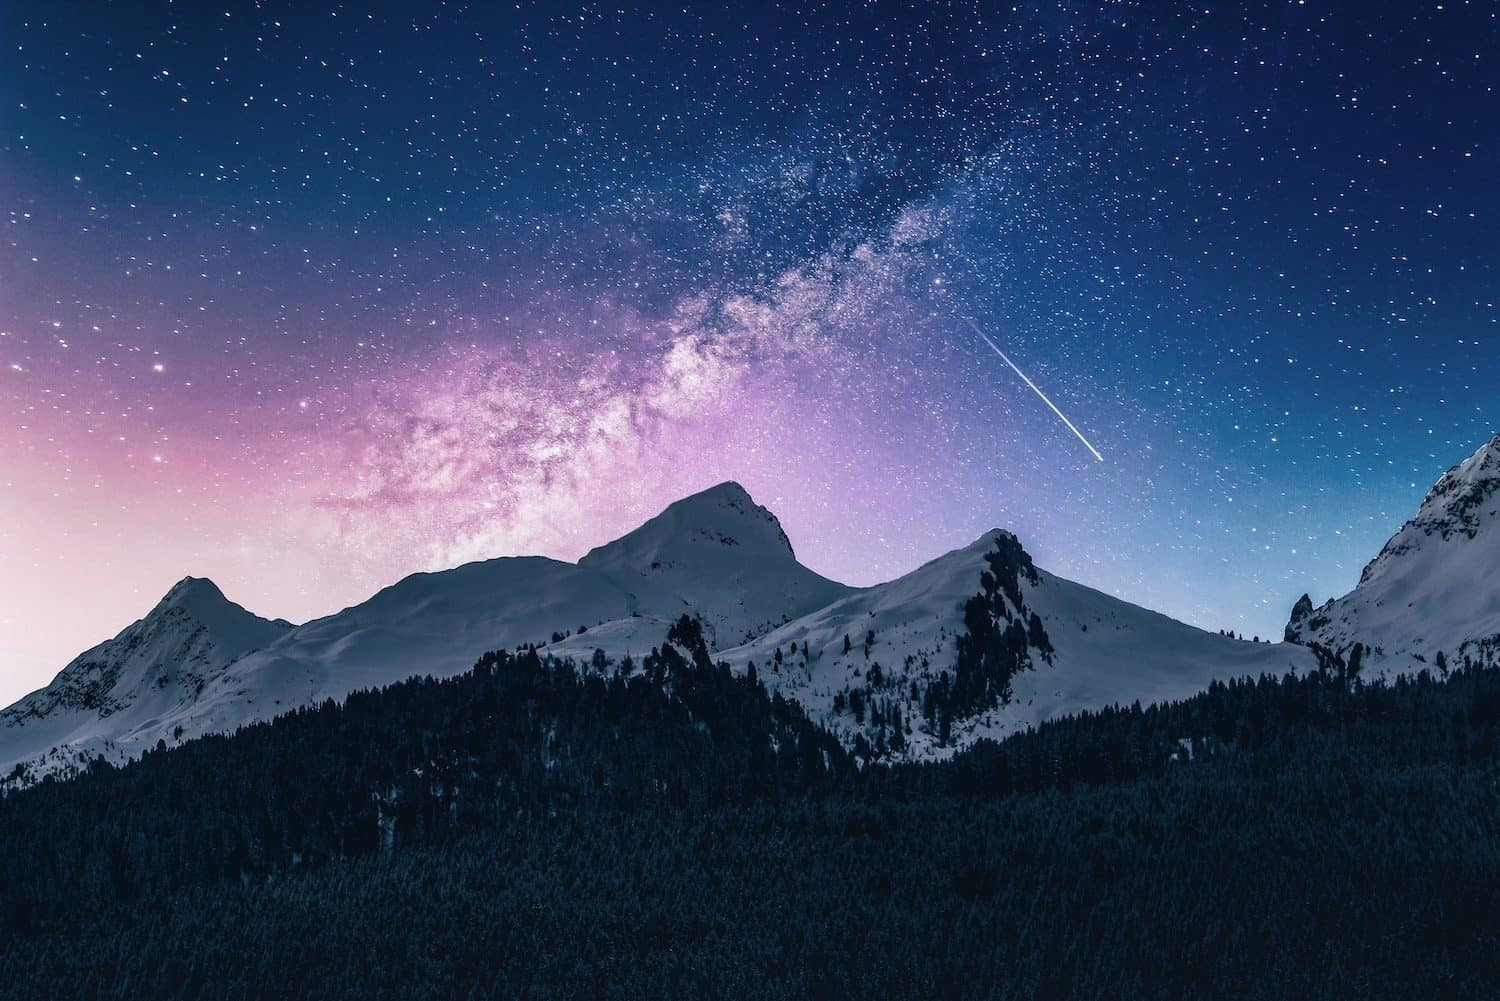 Night Sky with Foreground Interest